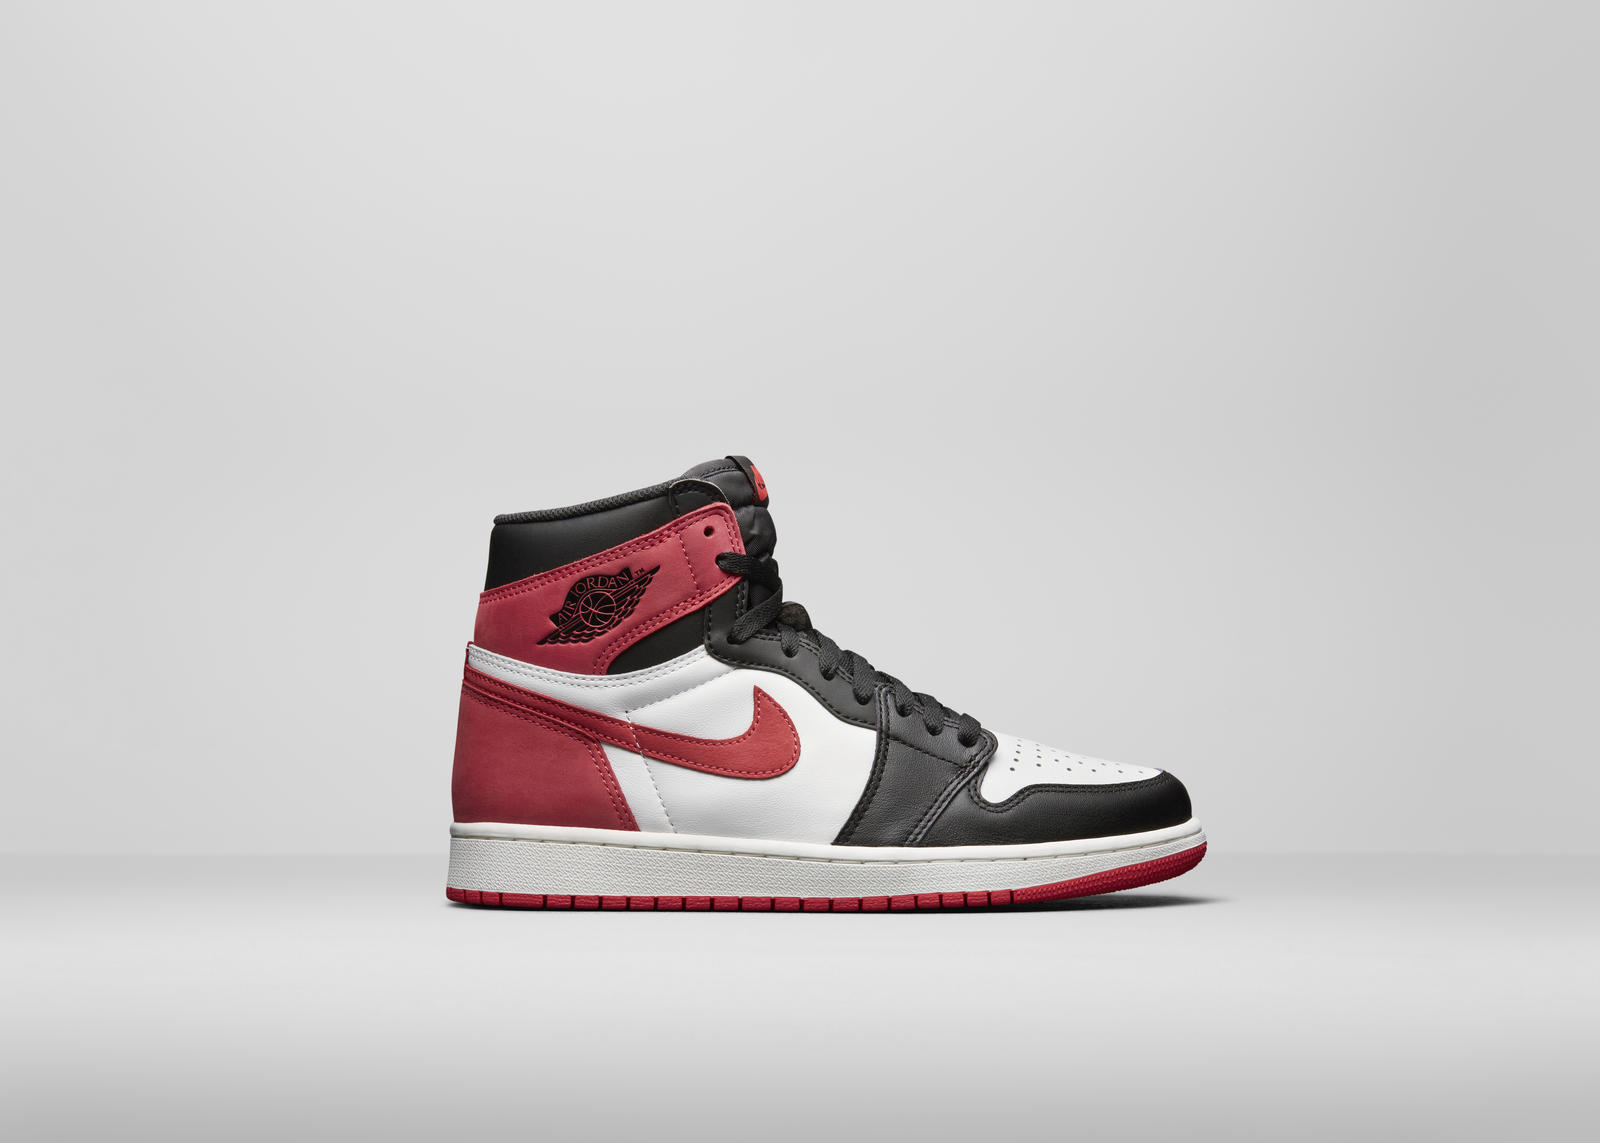 hot sale online f2a42 08075 Air Jordan I Best Hand in the Game Collection 21